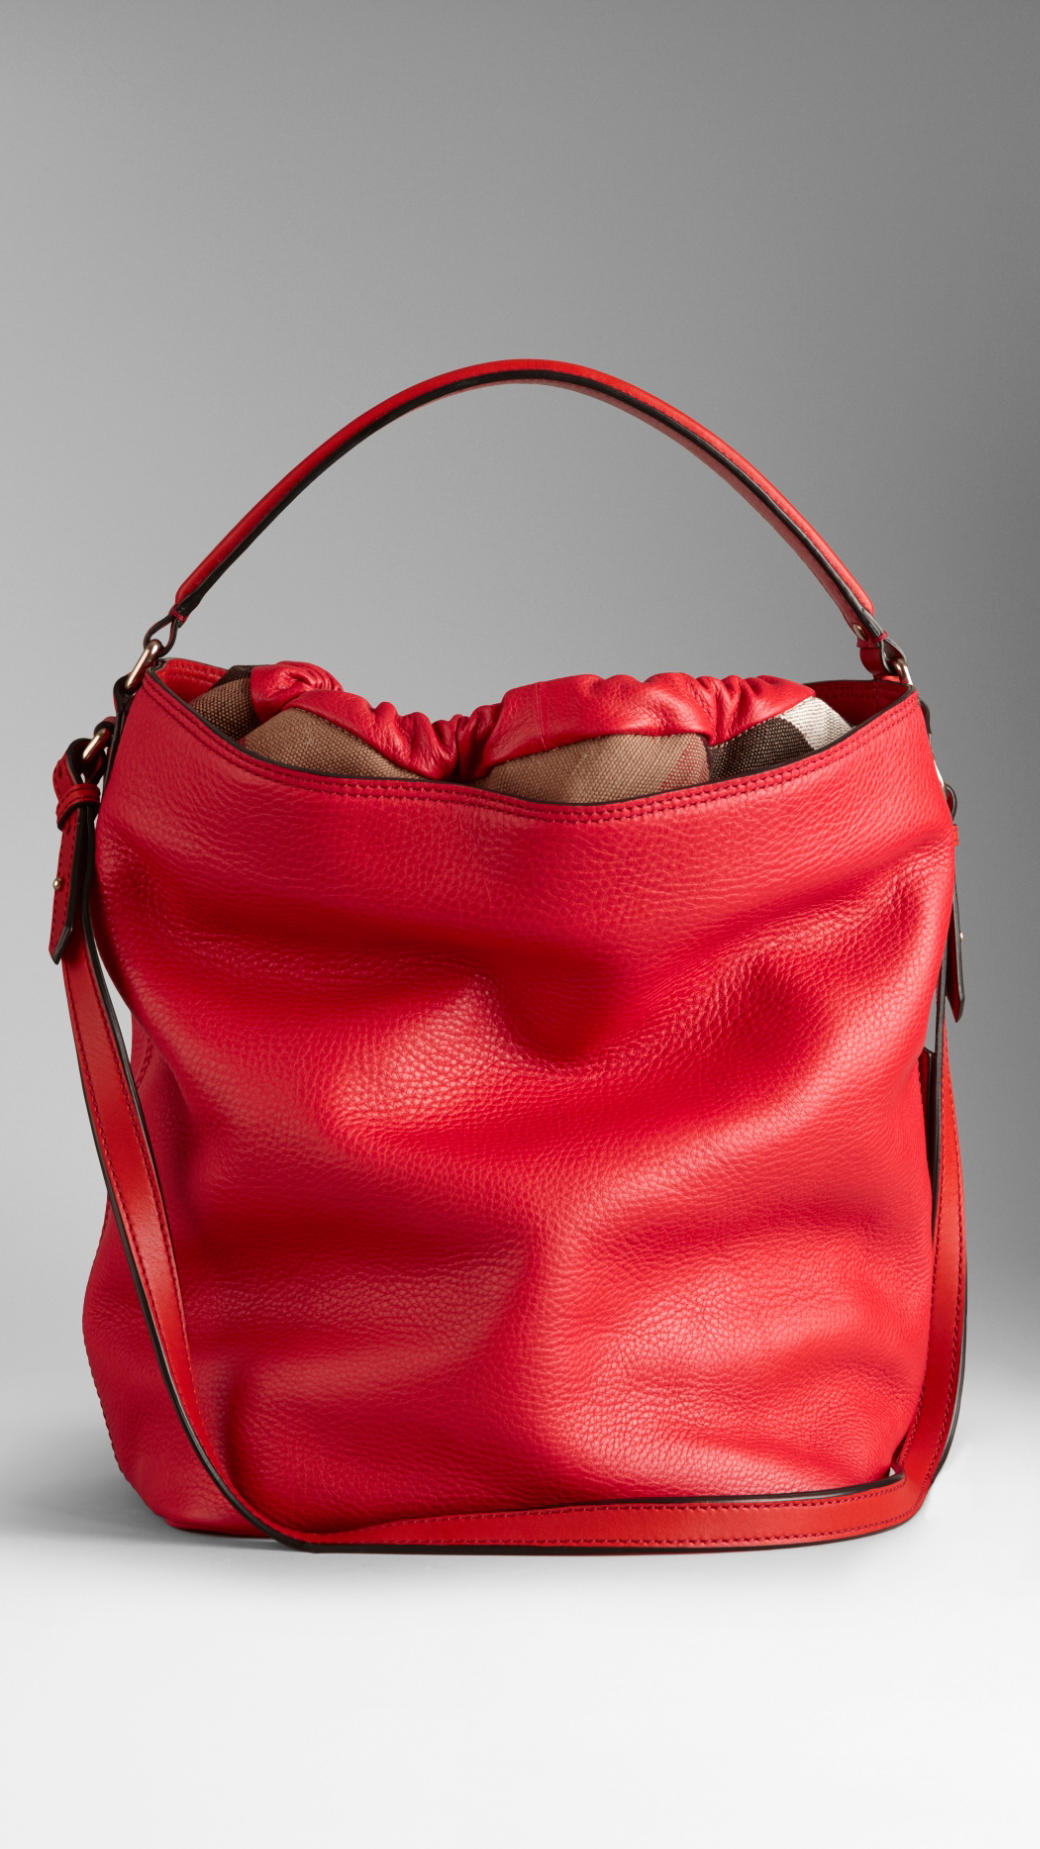 1d5a307fa554 Lyst - Burberry Medium Brit Check Leather Hobo Bag in Red